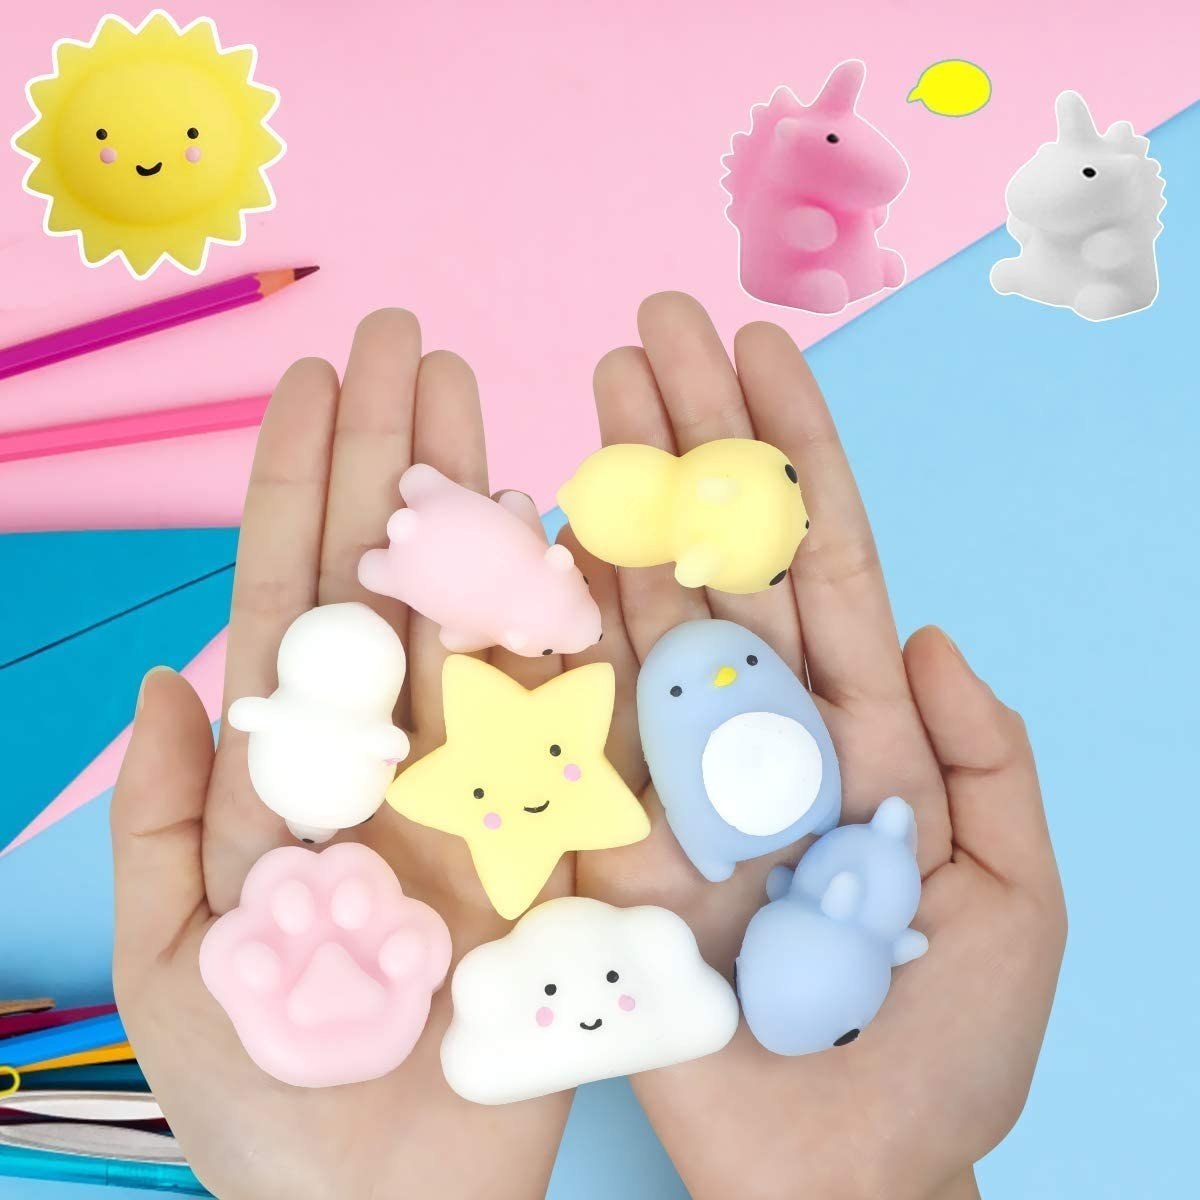 open hands with squishy toys in them